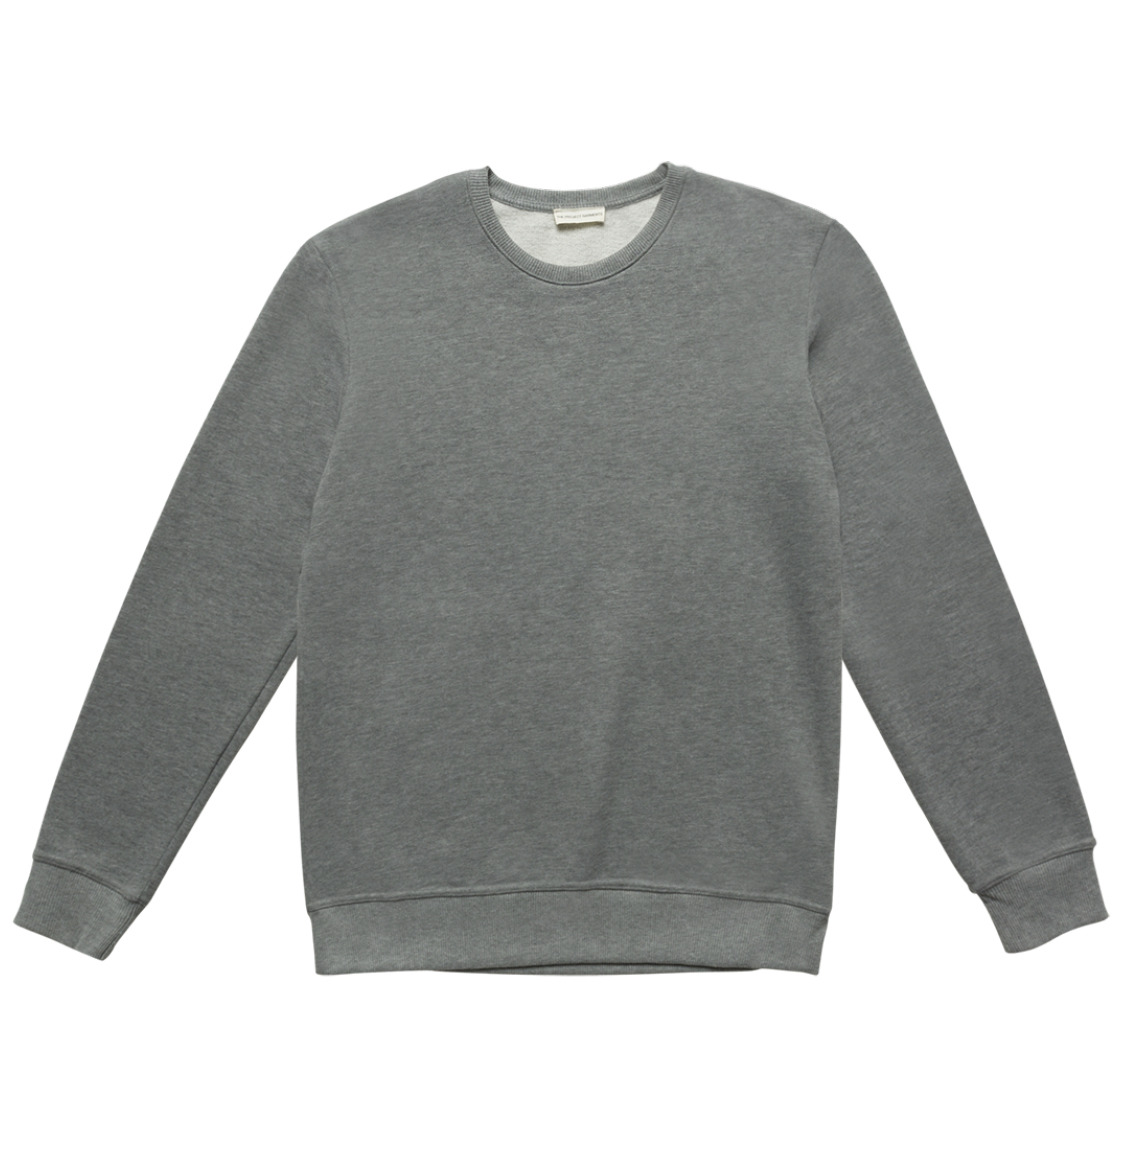 Crew Neck Sweatshirt Melange Grey